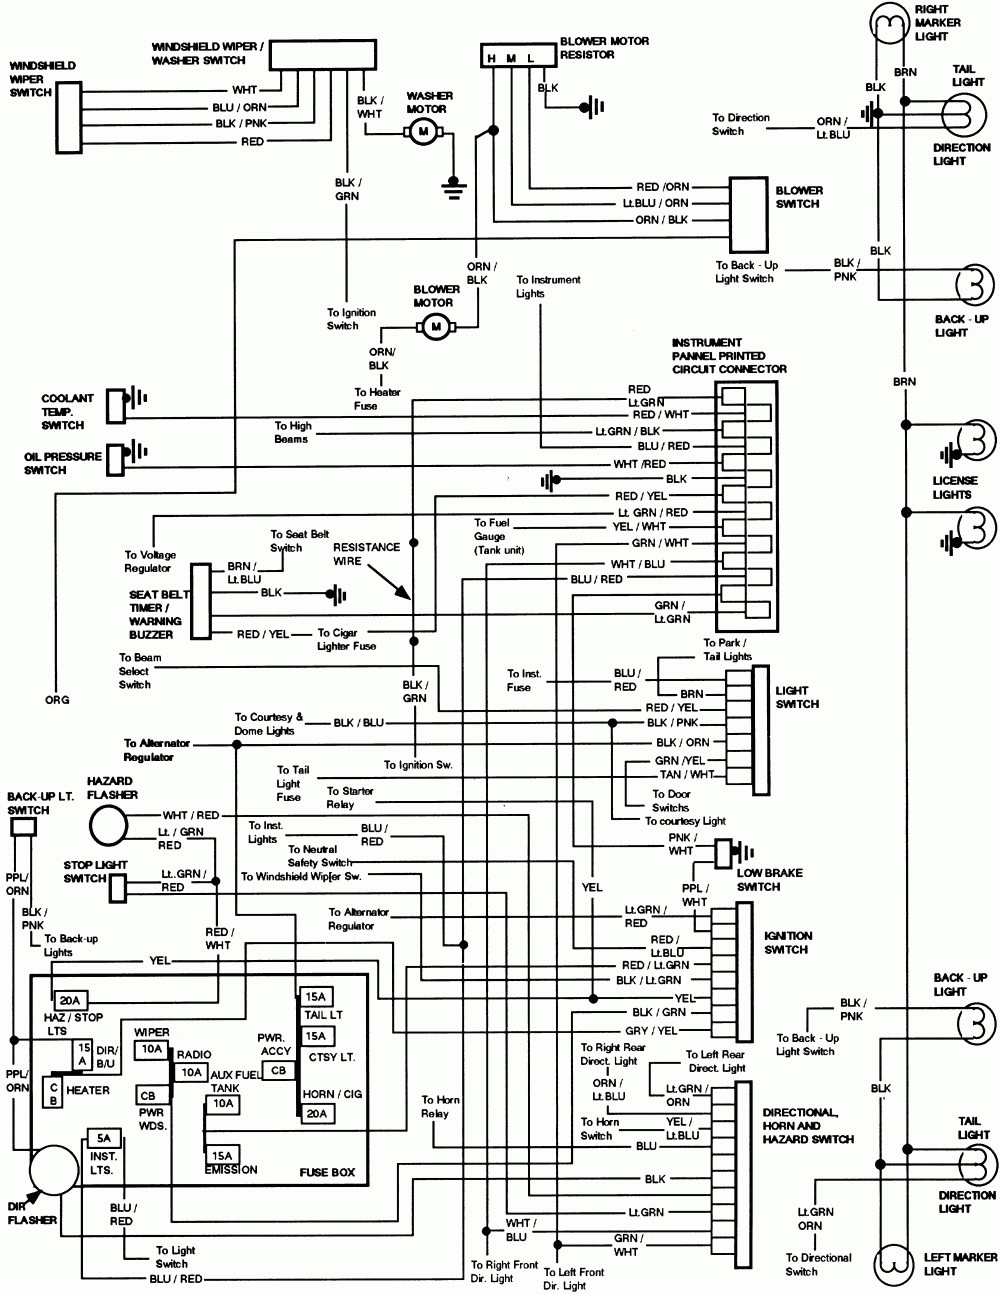 95 Ford F150 Wiring Diagram - Wiring Diagram Verified  Ford Truck Fuel Gauge Wiring Diagram on